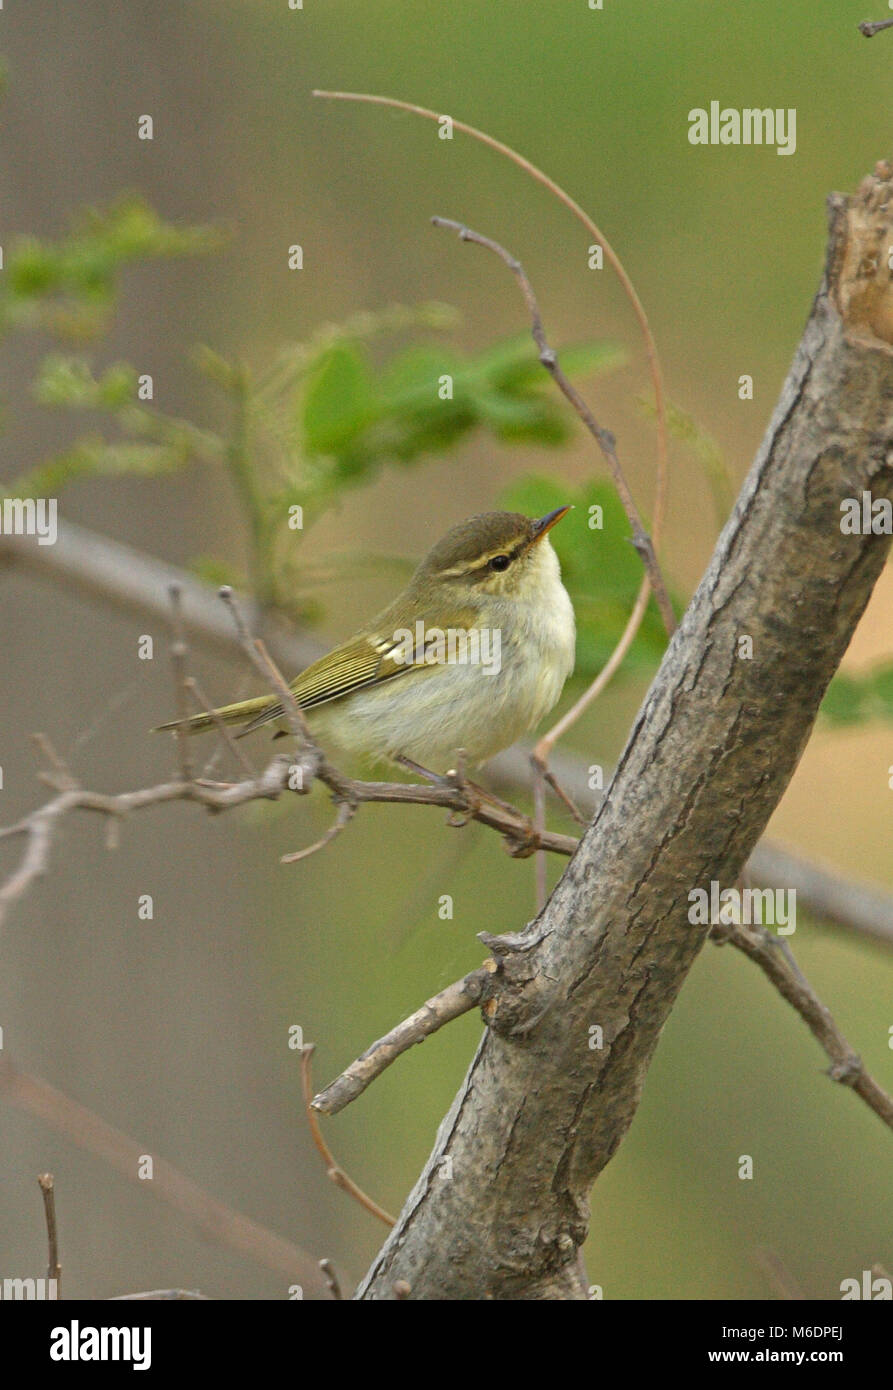 Two-barred Greenish Warbler (Phylloscopus plumbeitarsus) adult perched on twig  Hebei, China            May Stock Photo